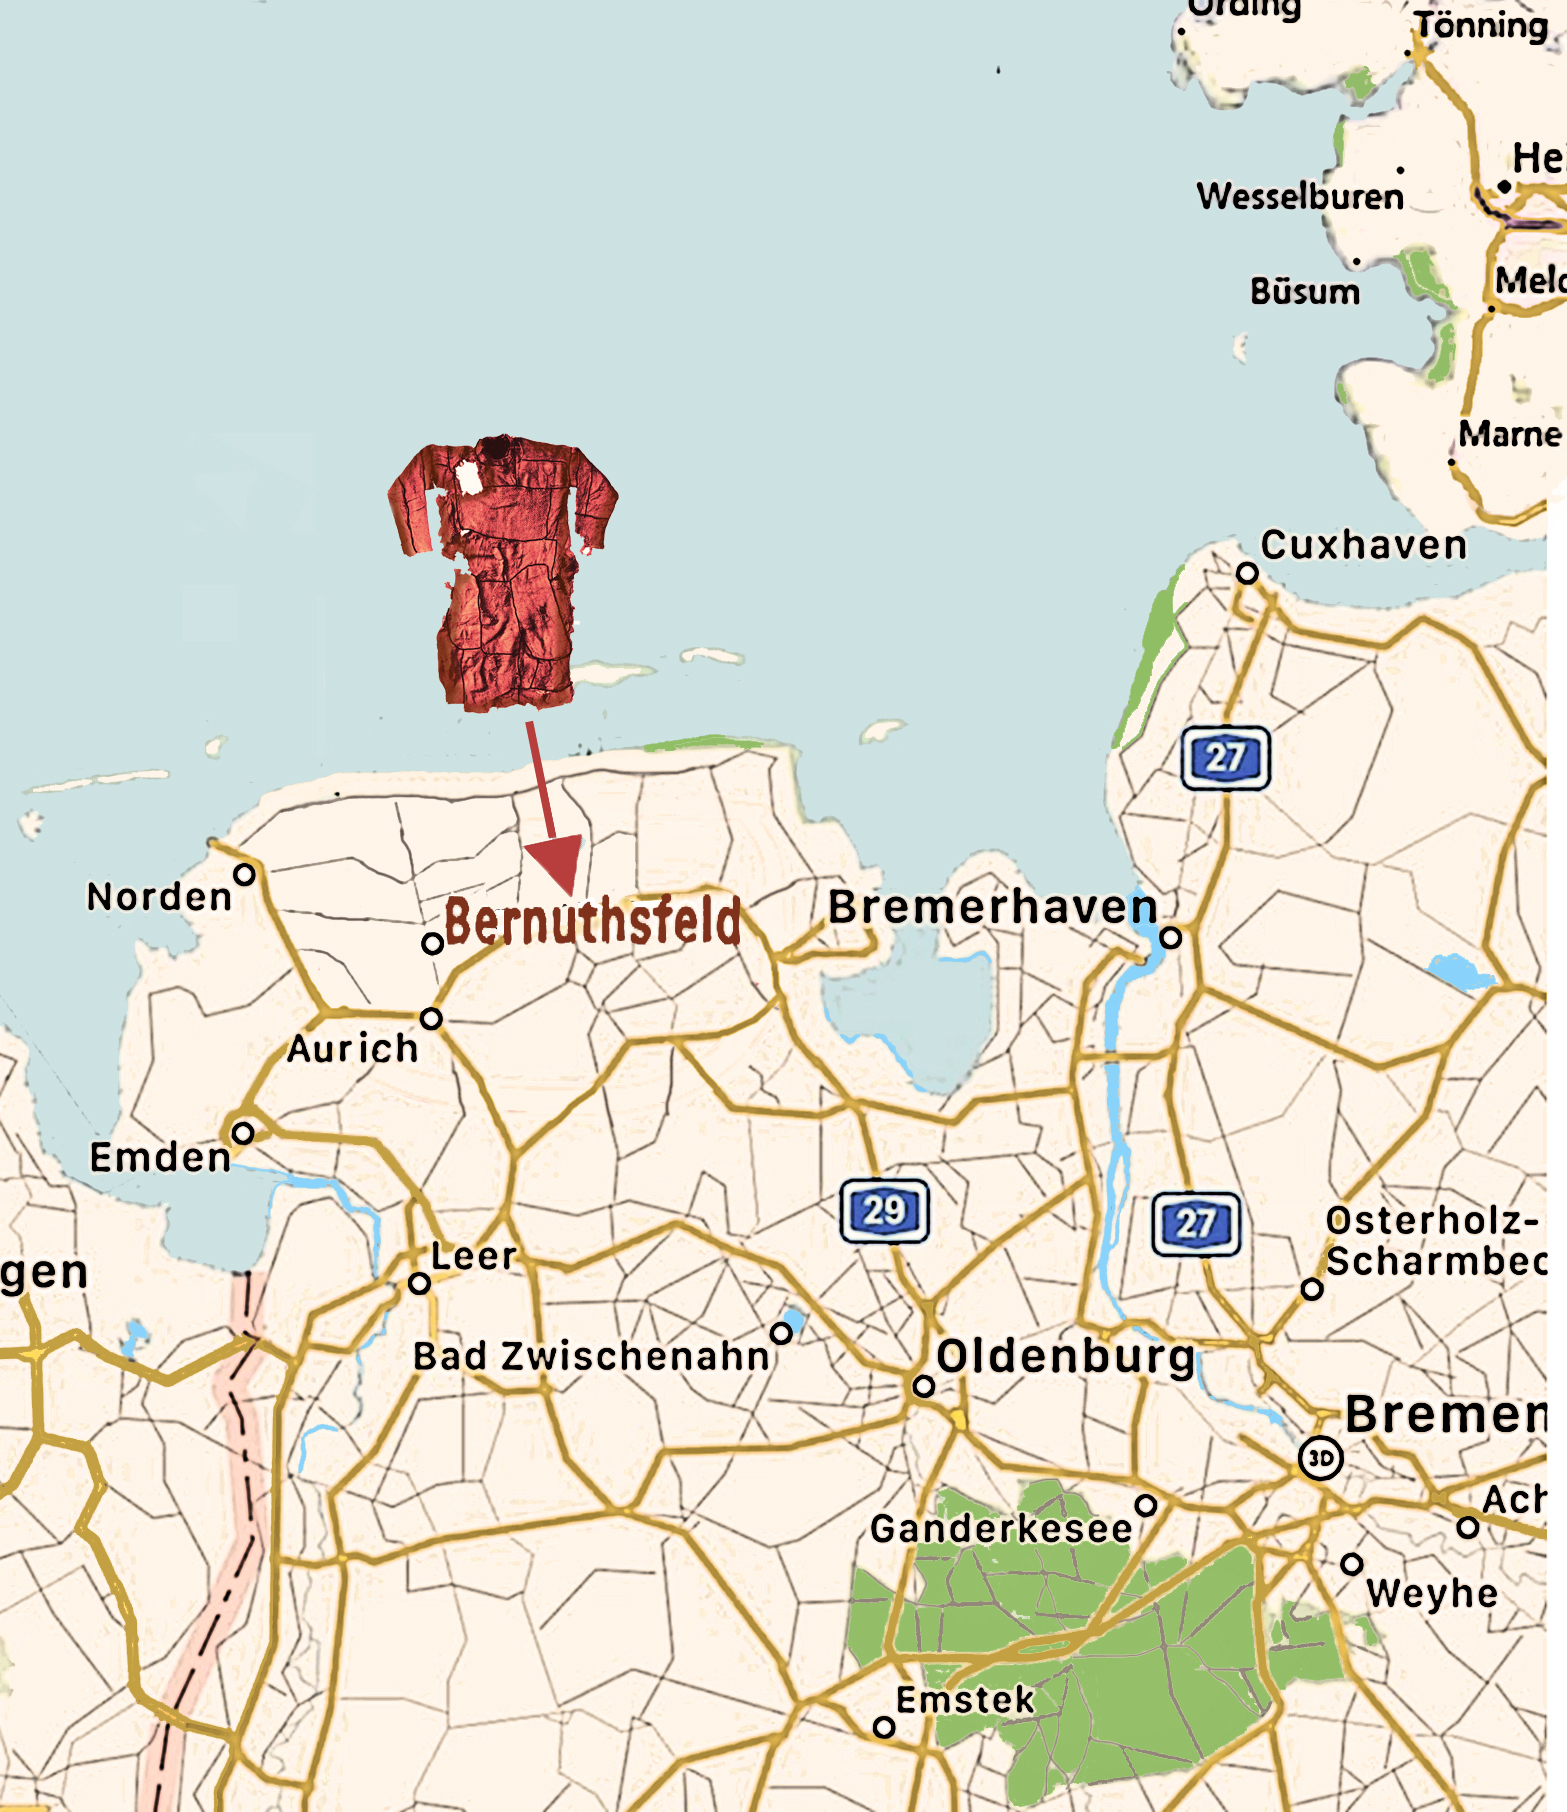 bernuthsfeld map best to print.jpg